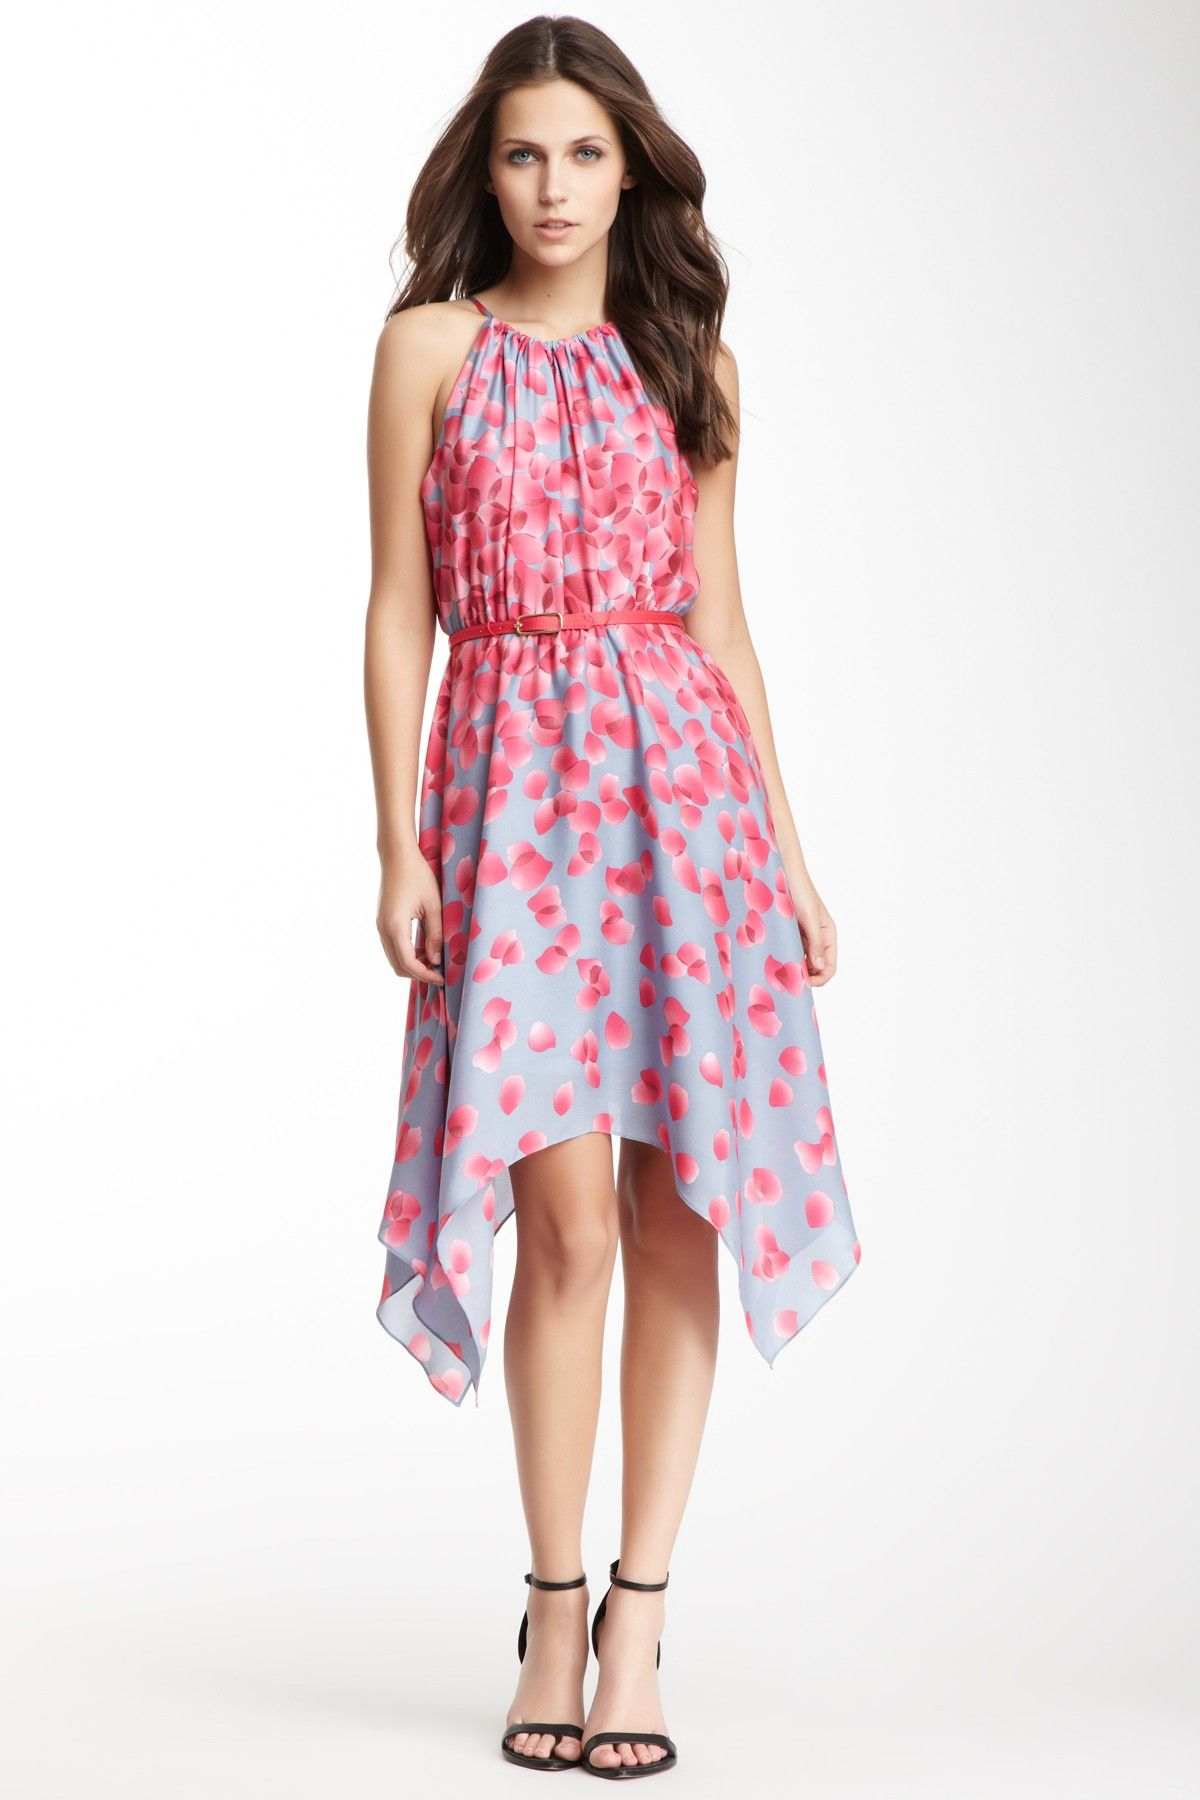 Max & Cleo Sanna Woven Cocktail Dress | Dresses + Frocks {Casual ...